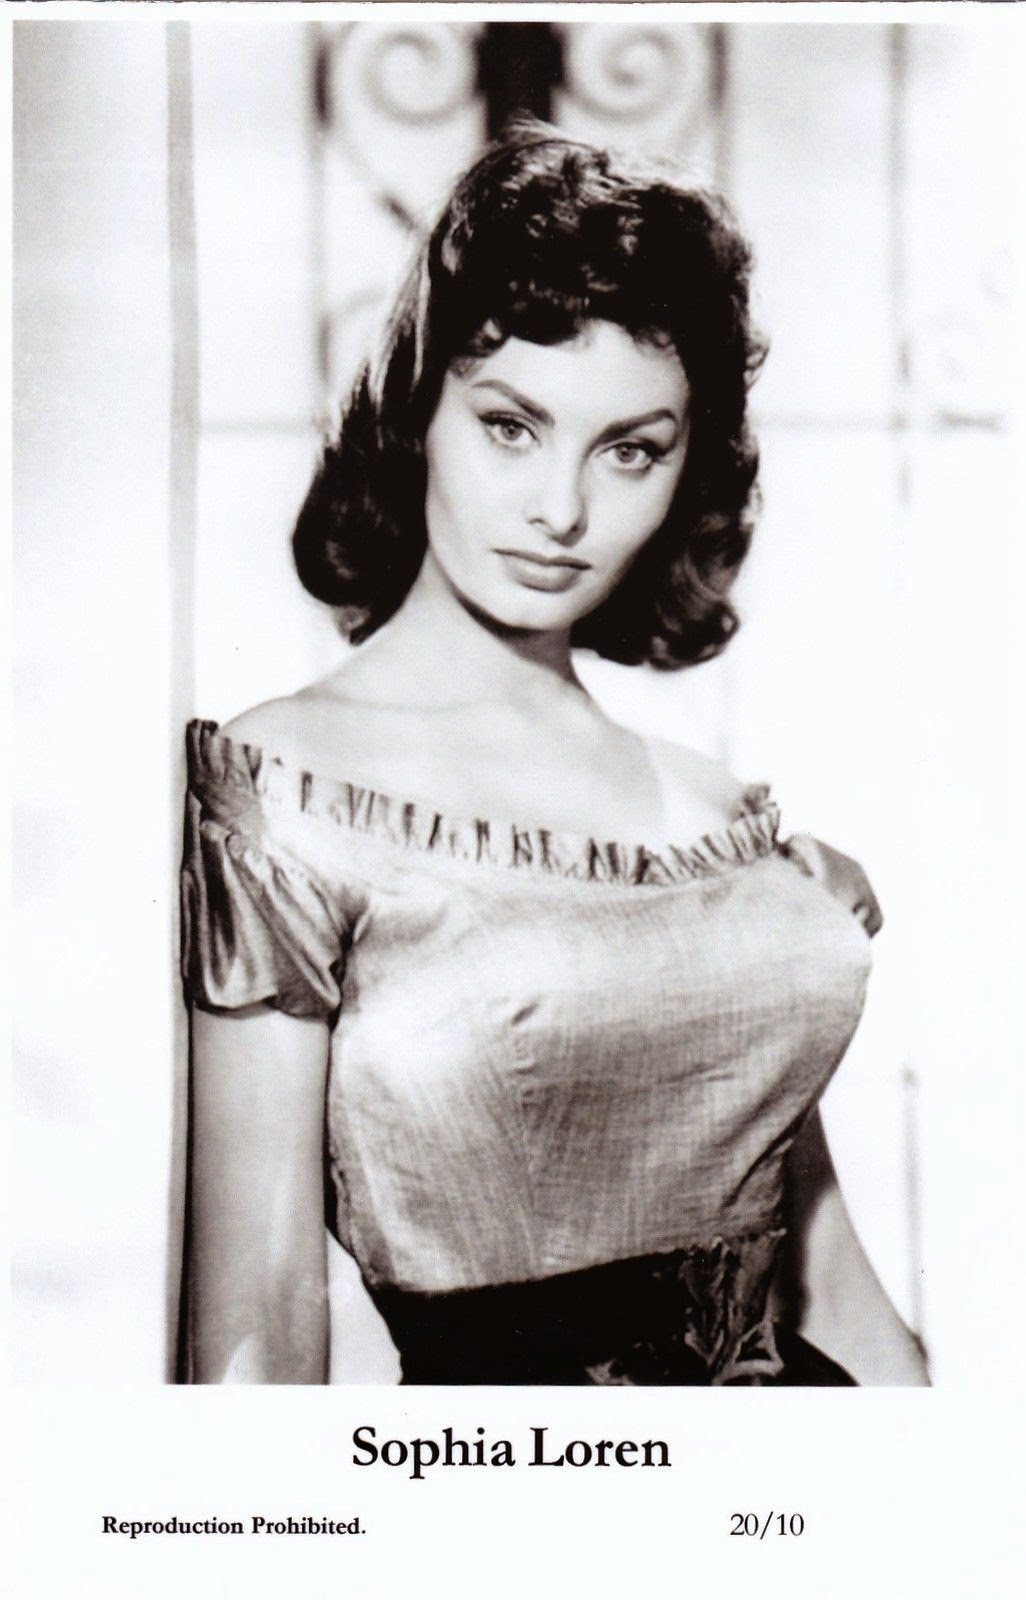 Portrait of Italian Actress Sophia Loren